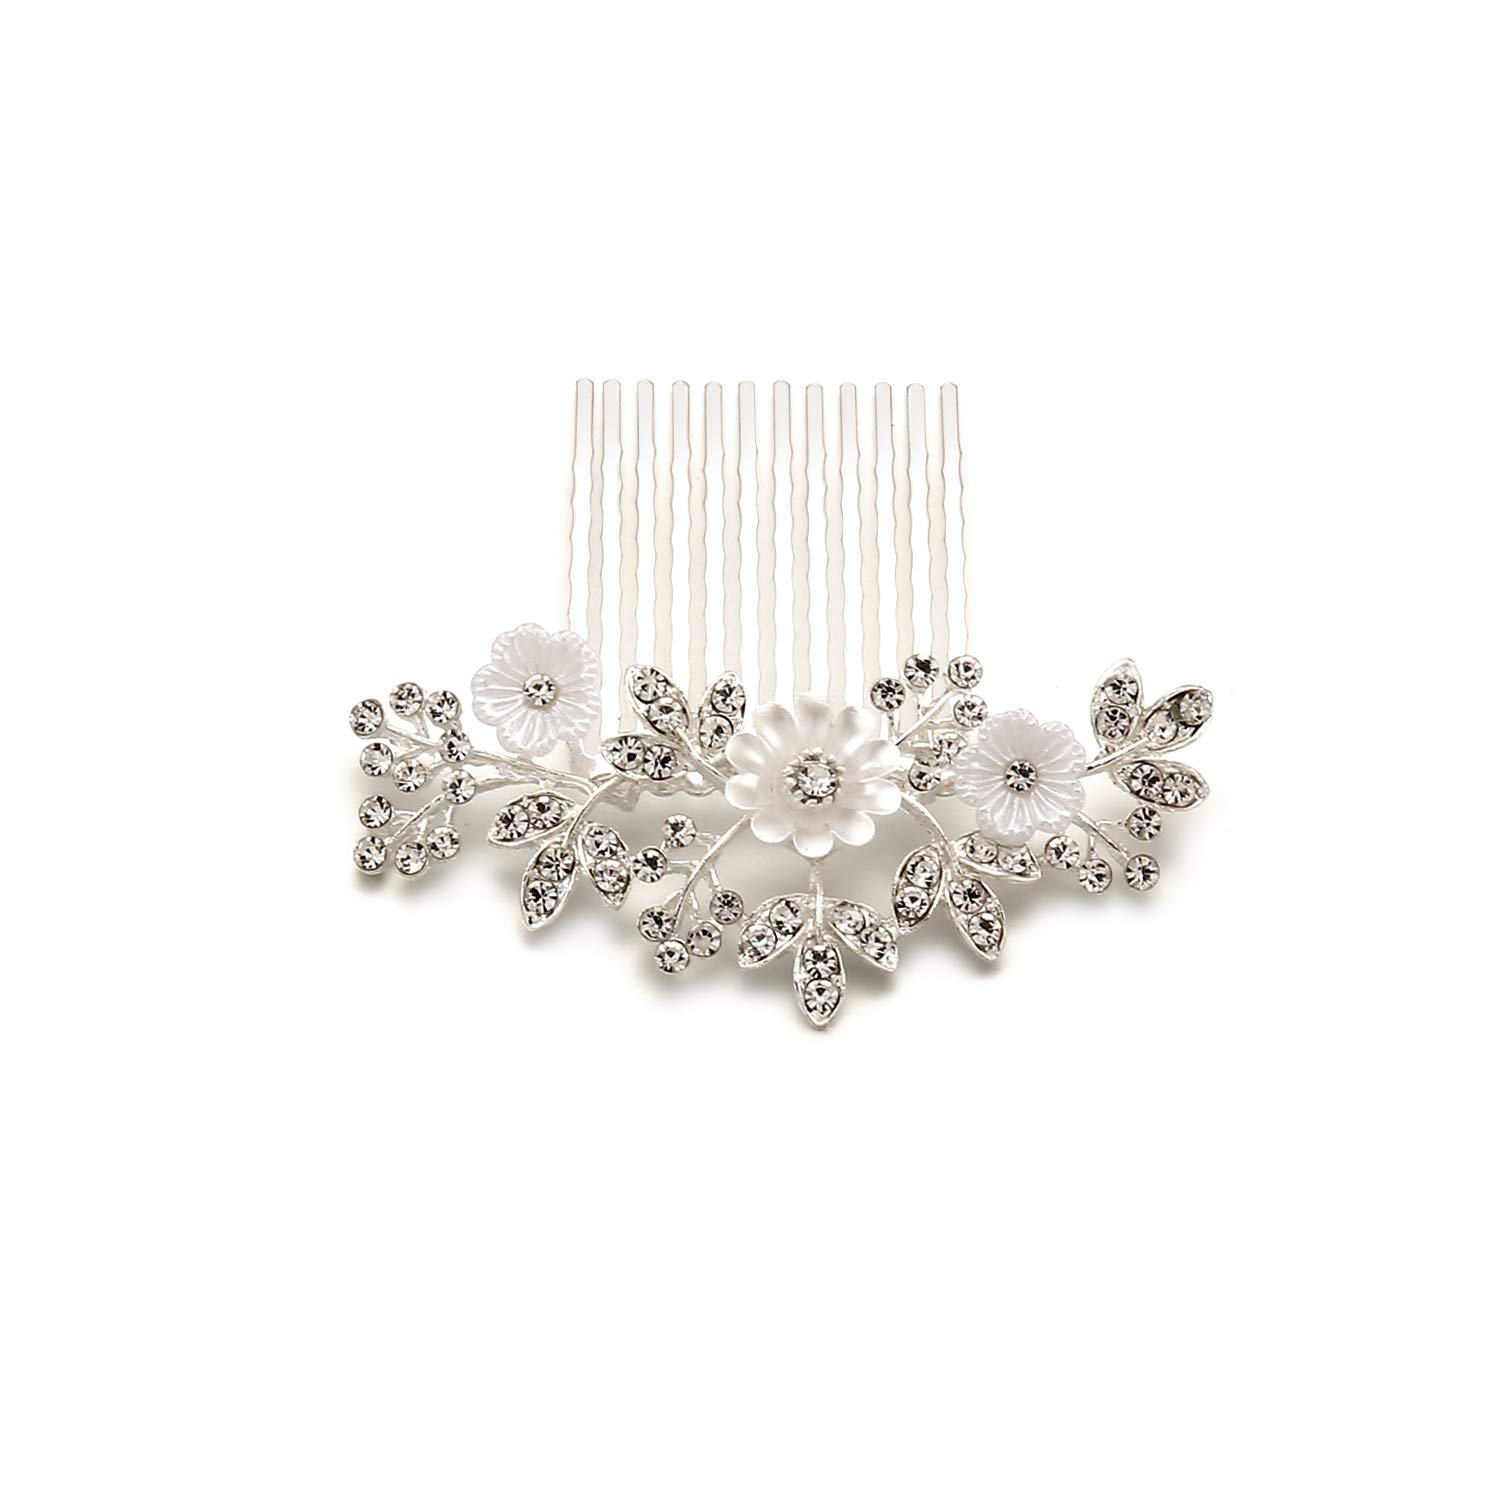 ARUMI Wedding Hair Comb Silver Rhinestones Crystal Pearls Daisy Flower Shell Vintage Bridal Hair Clips Accessories for Brides and Bridesmaids (Silver)